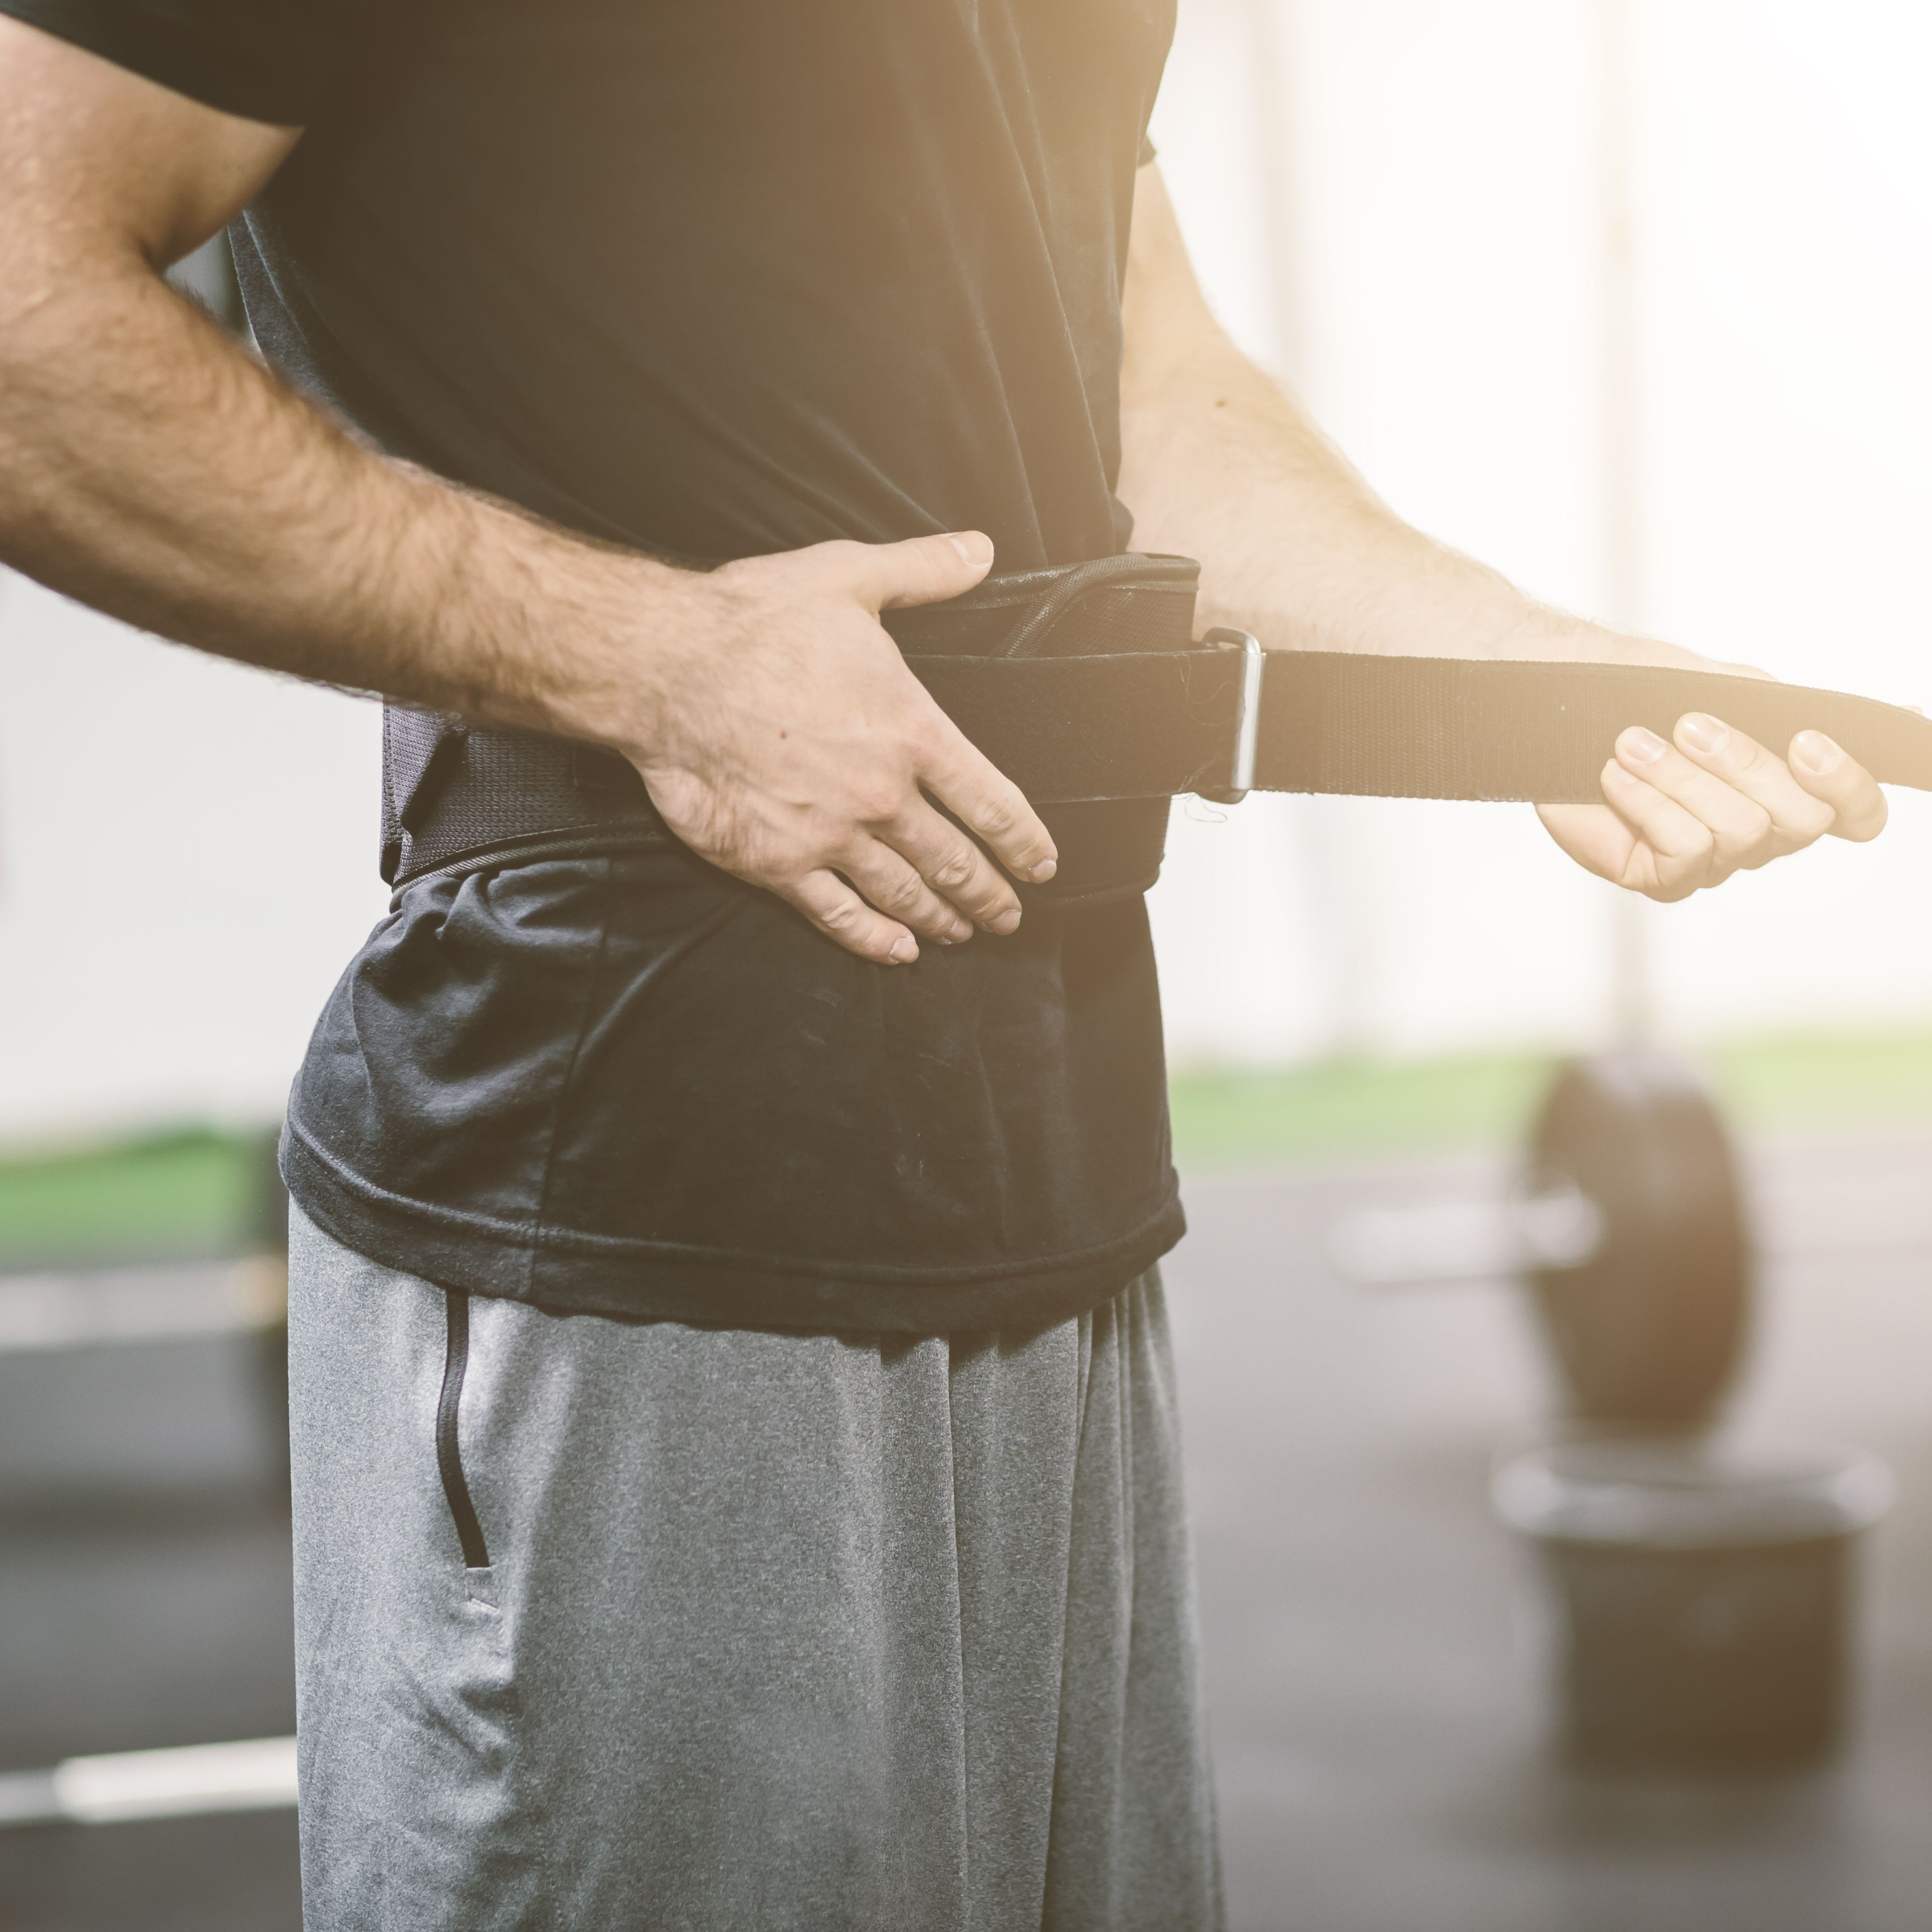 The 7 Best Weightlifting Belts of 2019